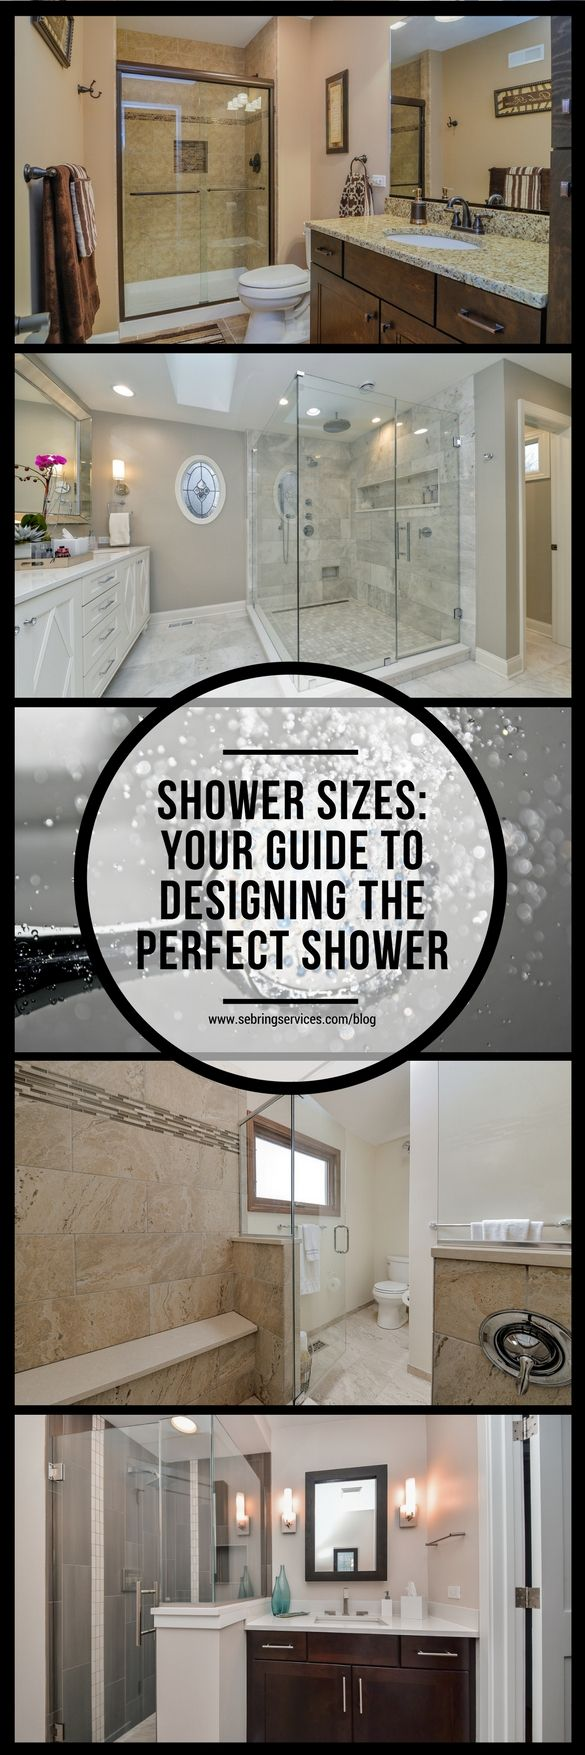 If you are remodeling or building a new bathroom, you are most likely considering installing a standard size shower. There are many shower sizes to consider. New showers are not something you shop for everyday; in fact, this might be the only time that you ever build one. Showers differ by construction, size, materials used and configuration. If you are working with a generous budget, then the world of options is open to you.